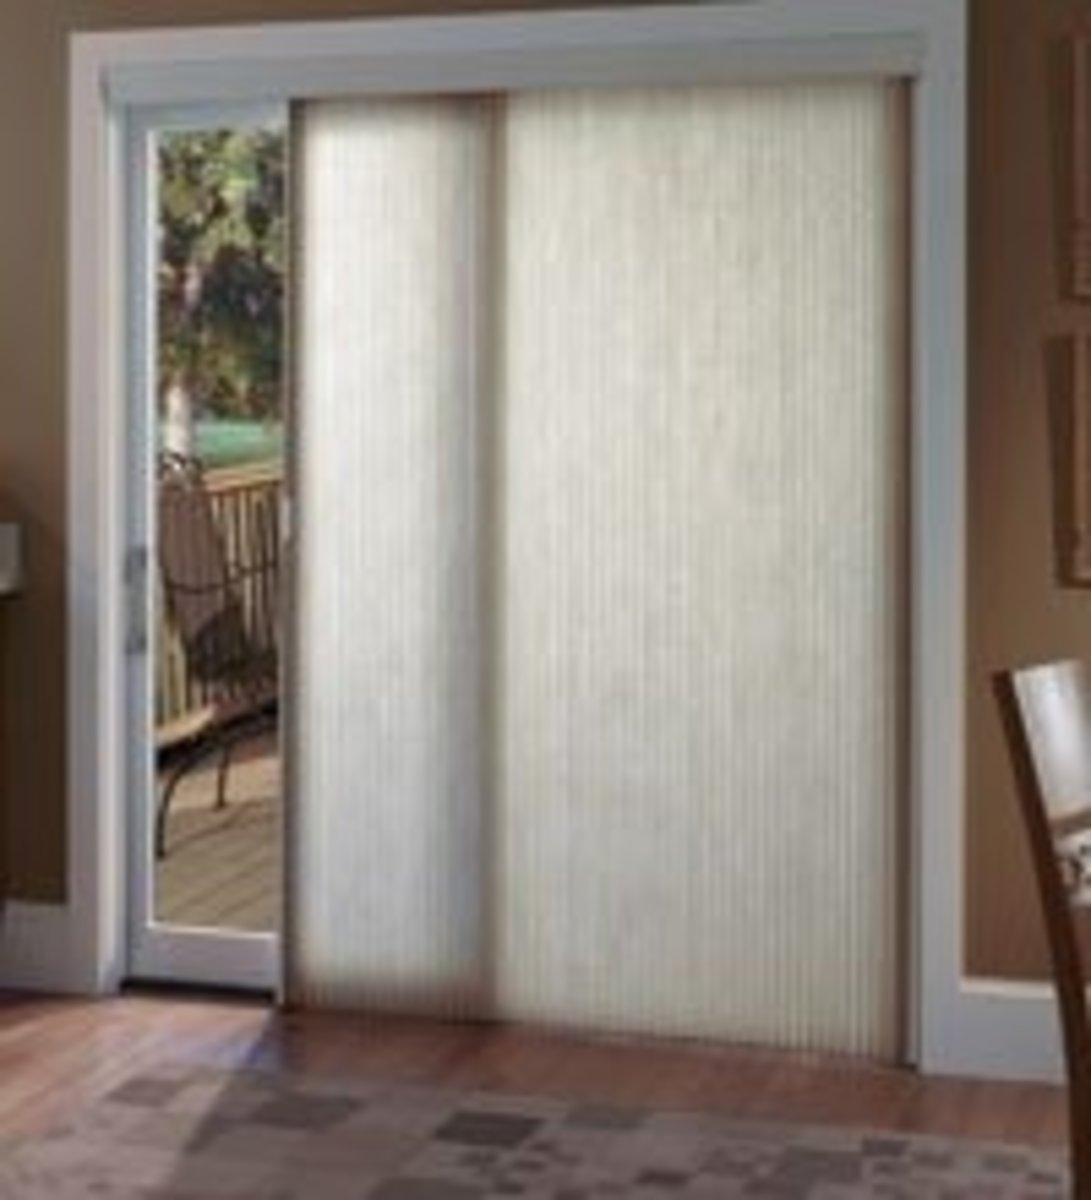 Decorating window covering for door : Window Treatments for Sliding Glass Doors | Dengarden